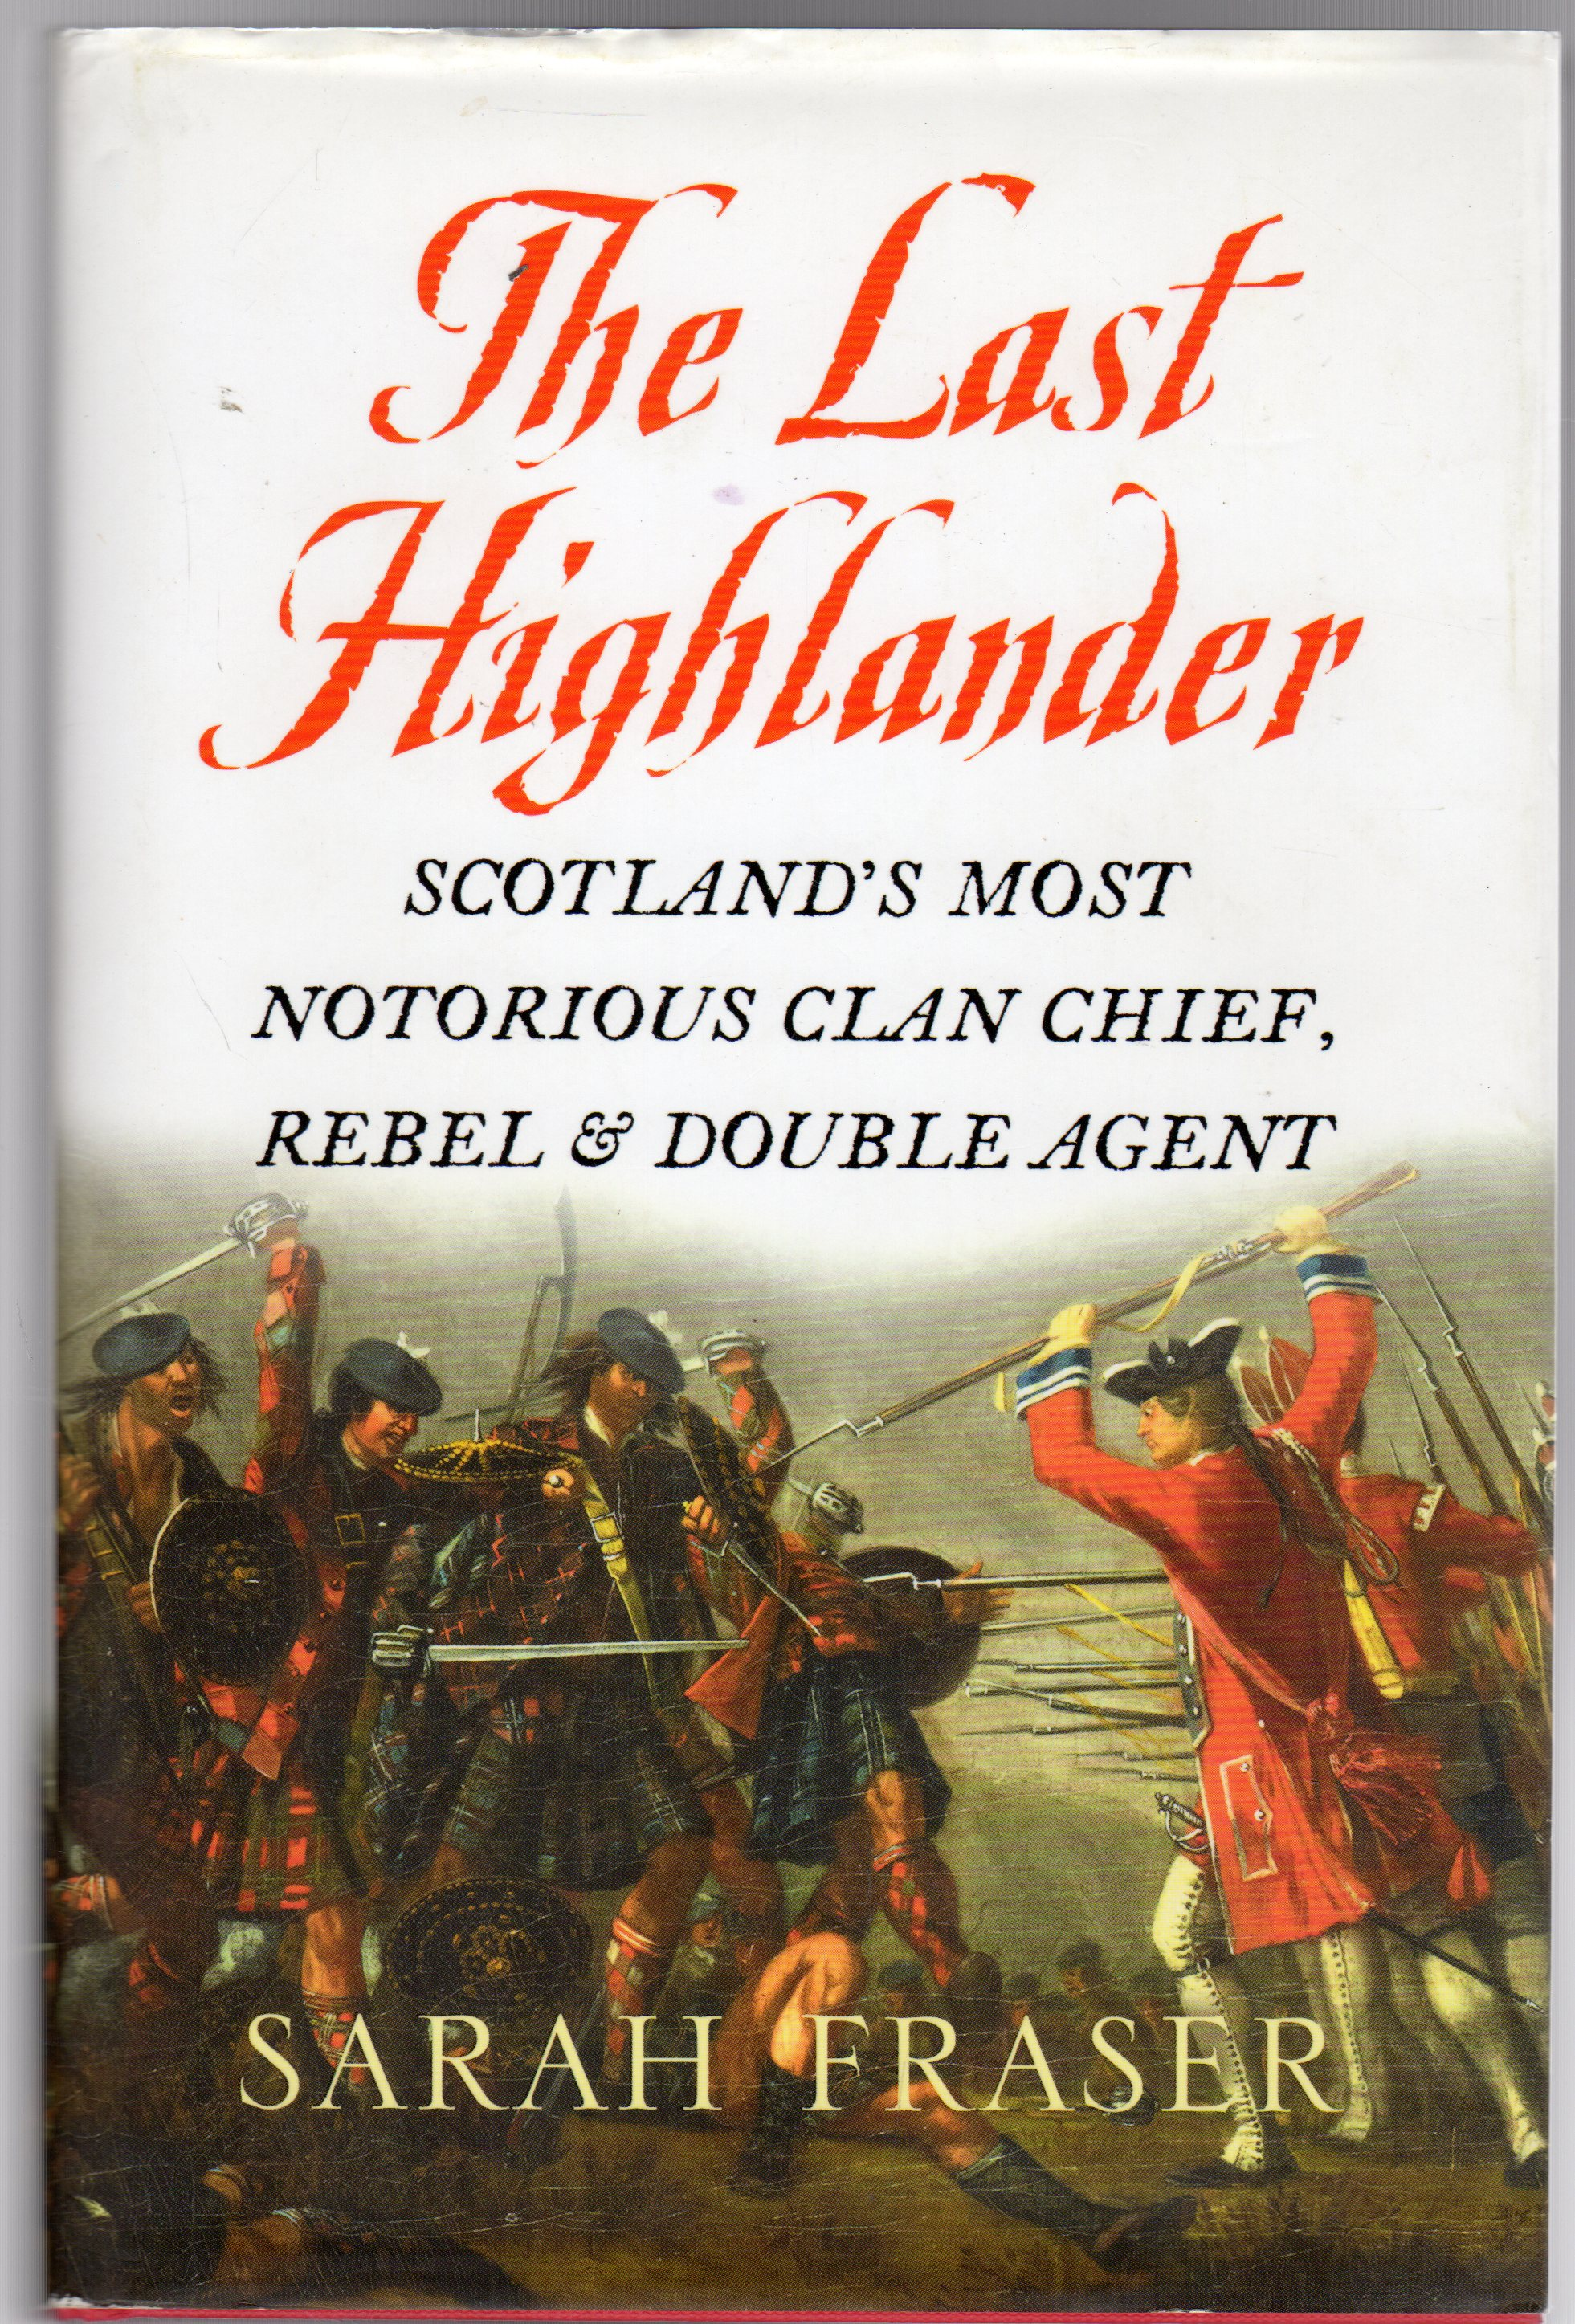 Image for The Last Highlander (SIGNED COPY)